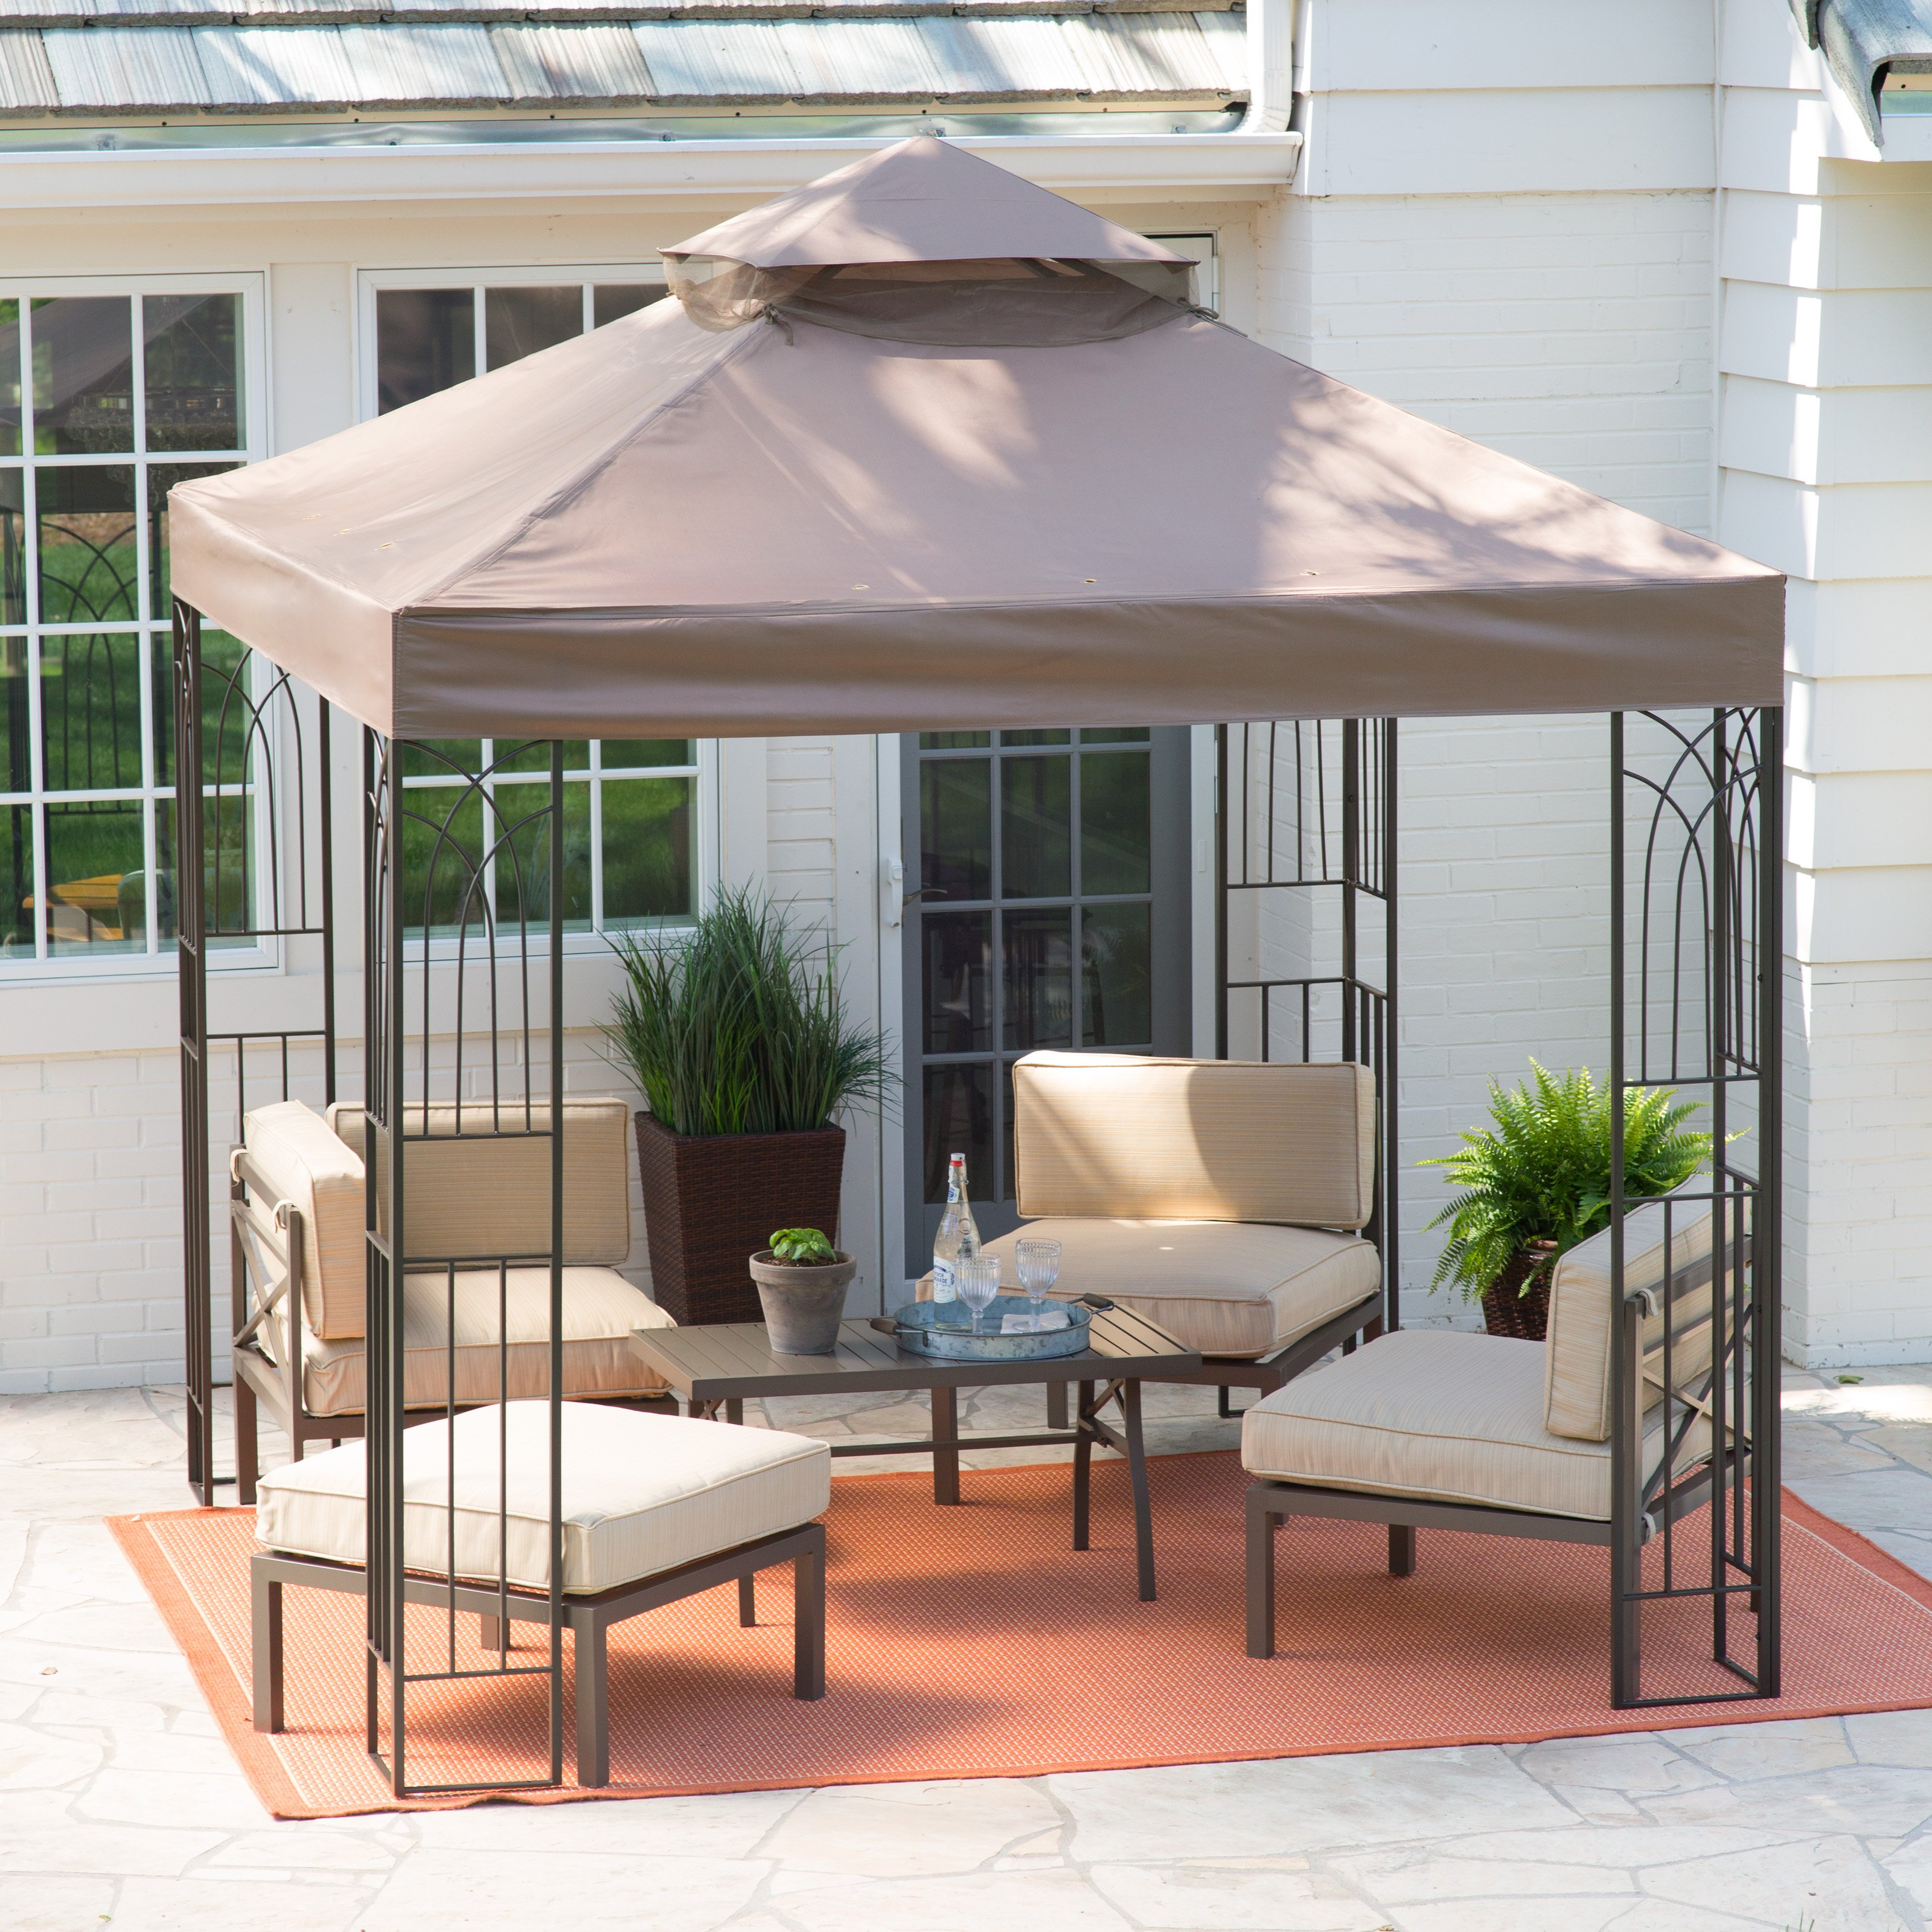 Coral Coast Prairie Grass 8 x 8 ft. Gazebo by